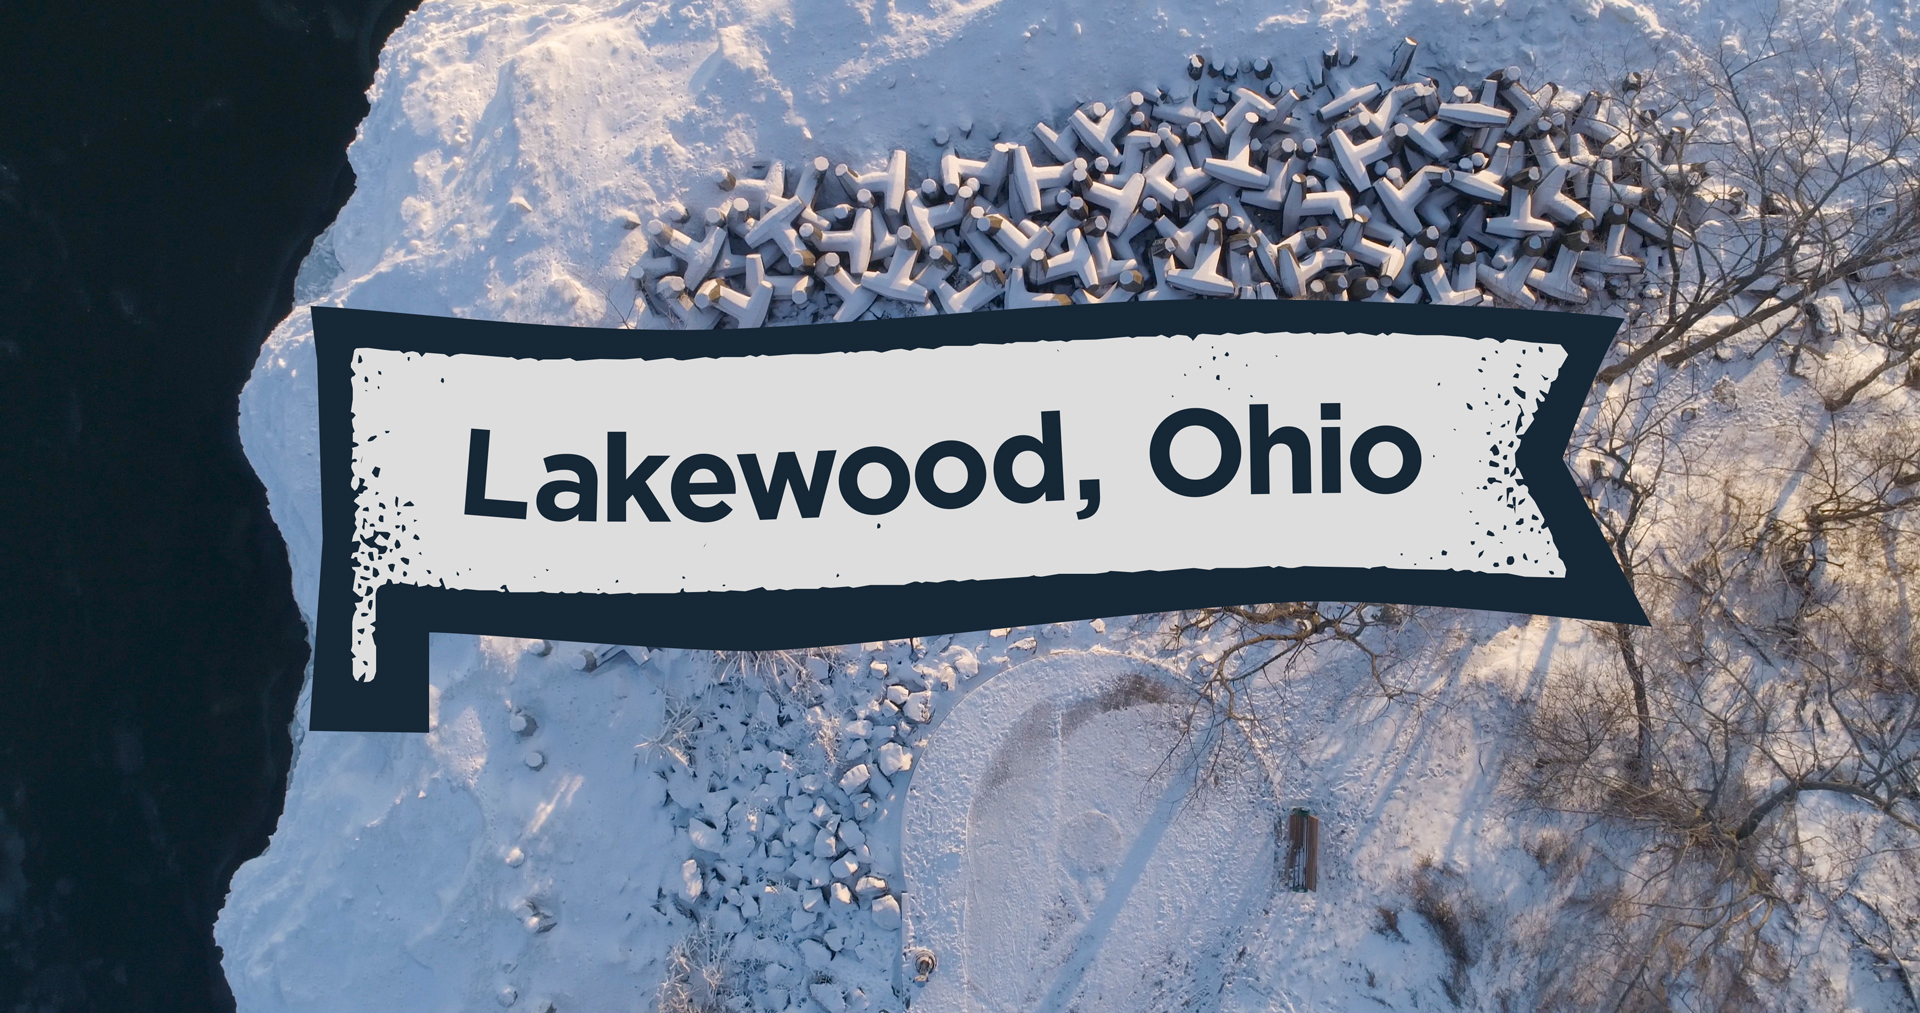 Lakewood, Ohio: Flying over Lakewood Park in the winter